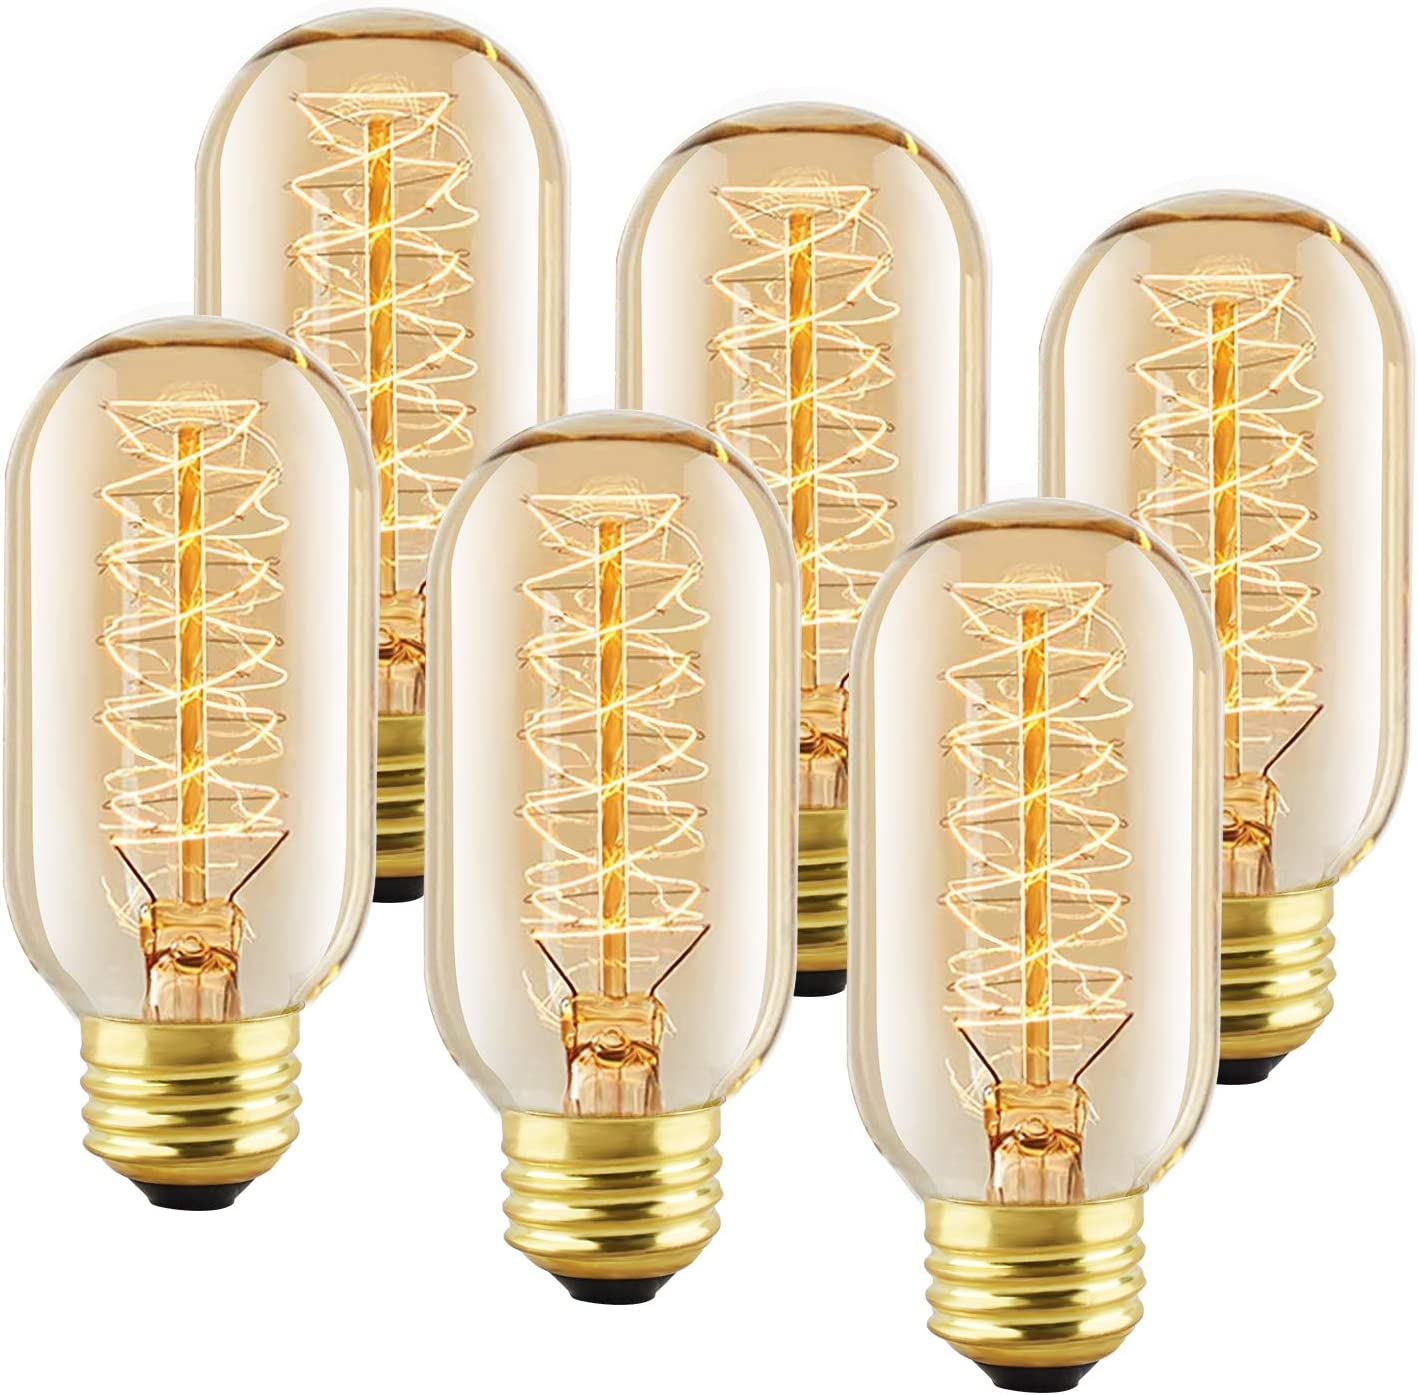 6 Pack T45 Edison Bulbs, 40 Watt Antique Vintage E26 Base Dimmable Amber Glass Incandescent Light Bulbs, Warm White 120V Lamp for Home Light Fixtures Decoration, Warll Sconce by LUXON